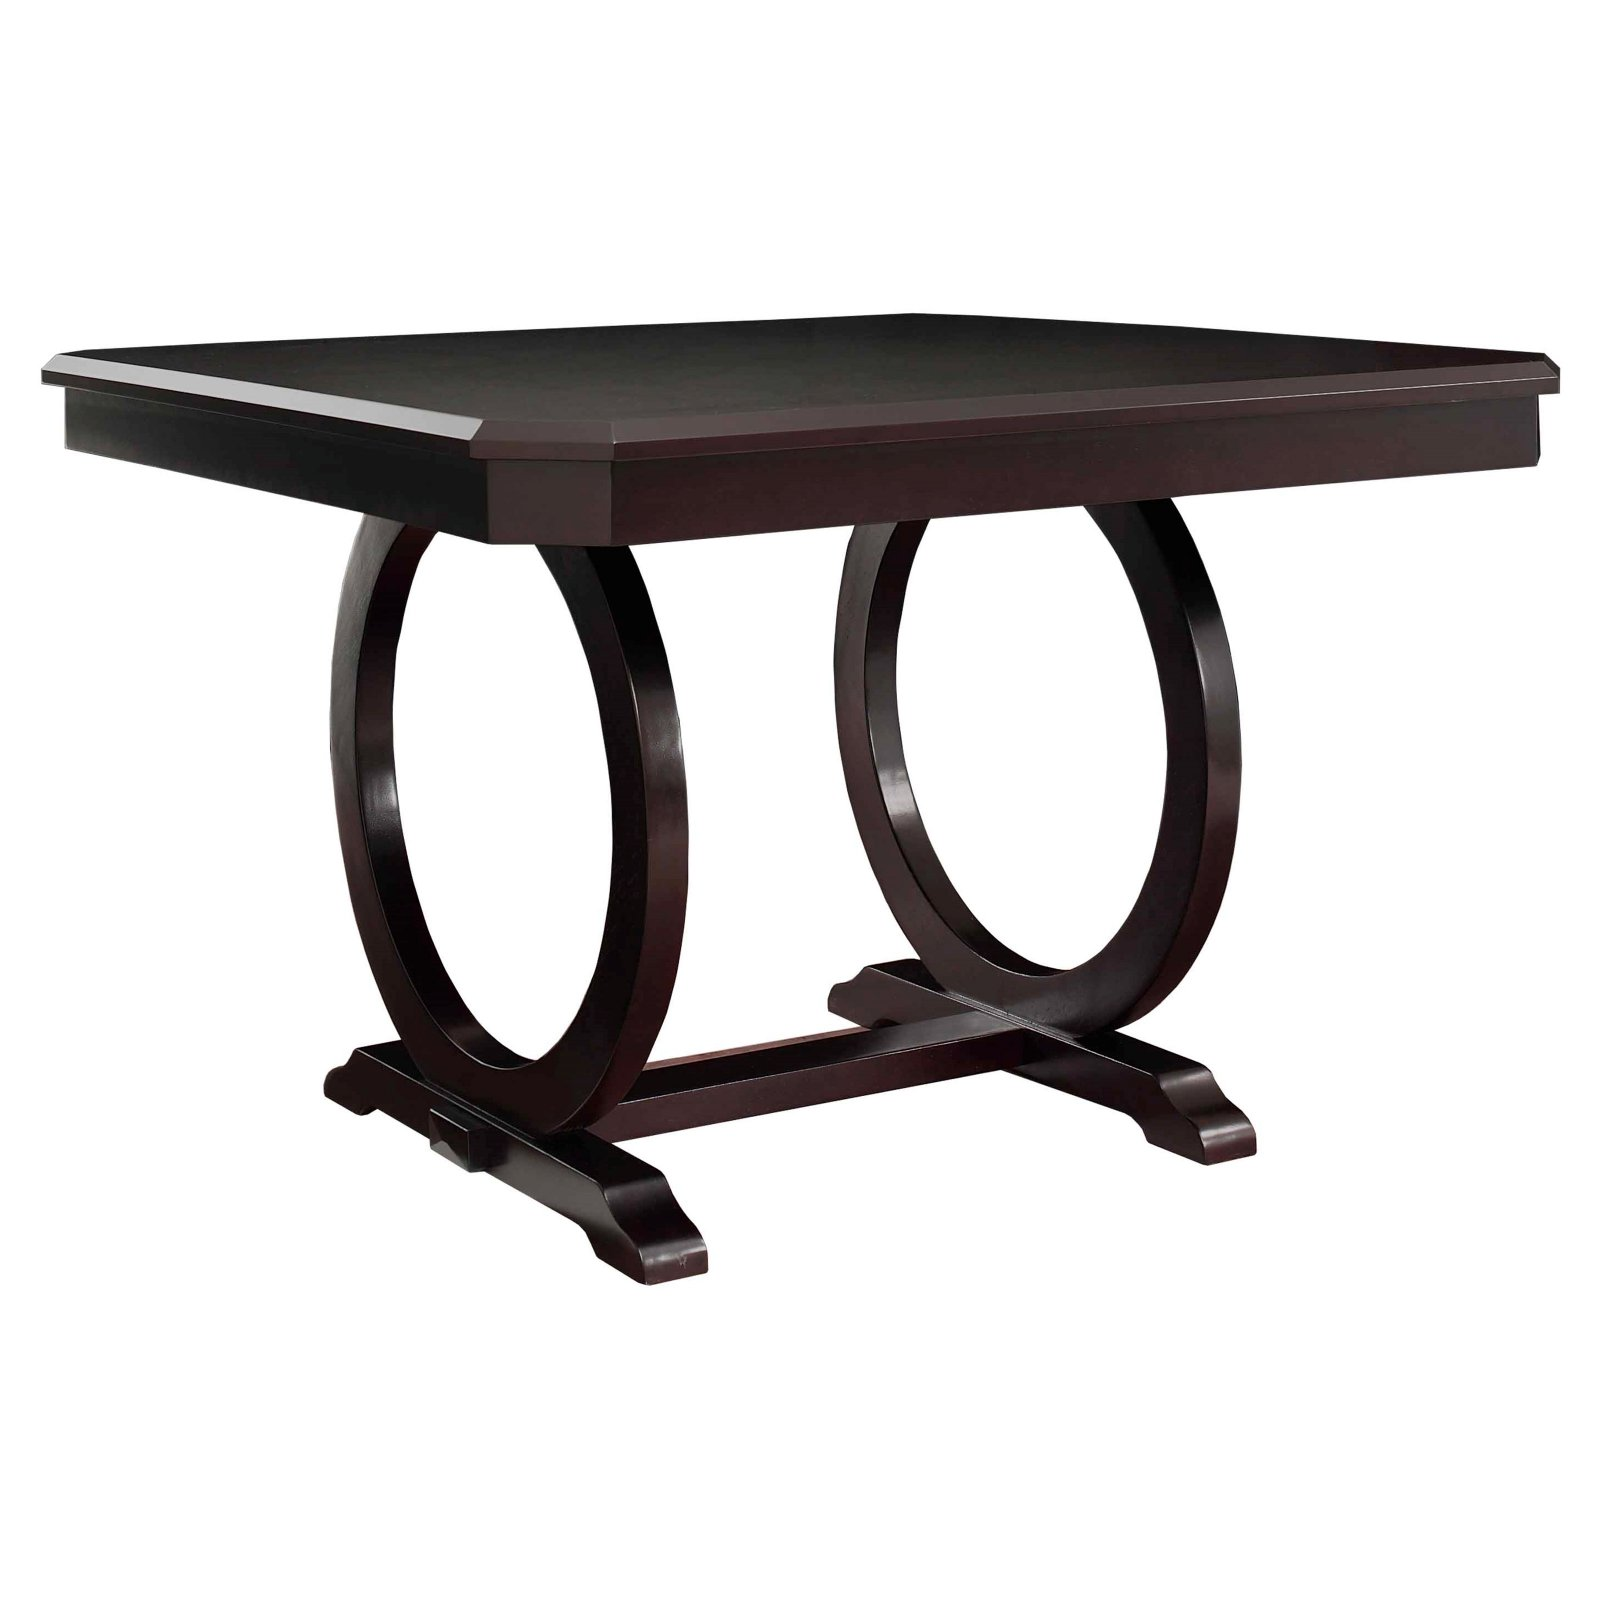 Powell Brigham Counter Height Square Dining Table - Cherry